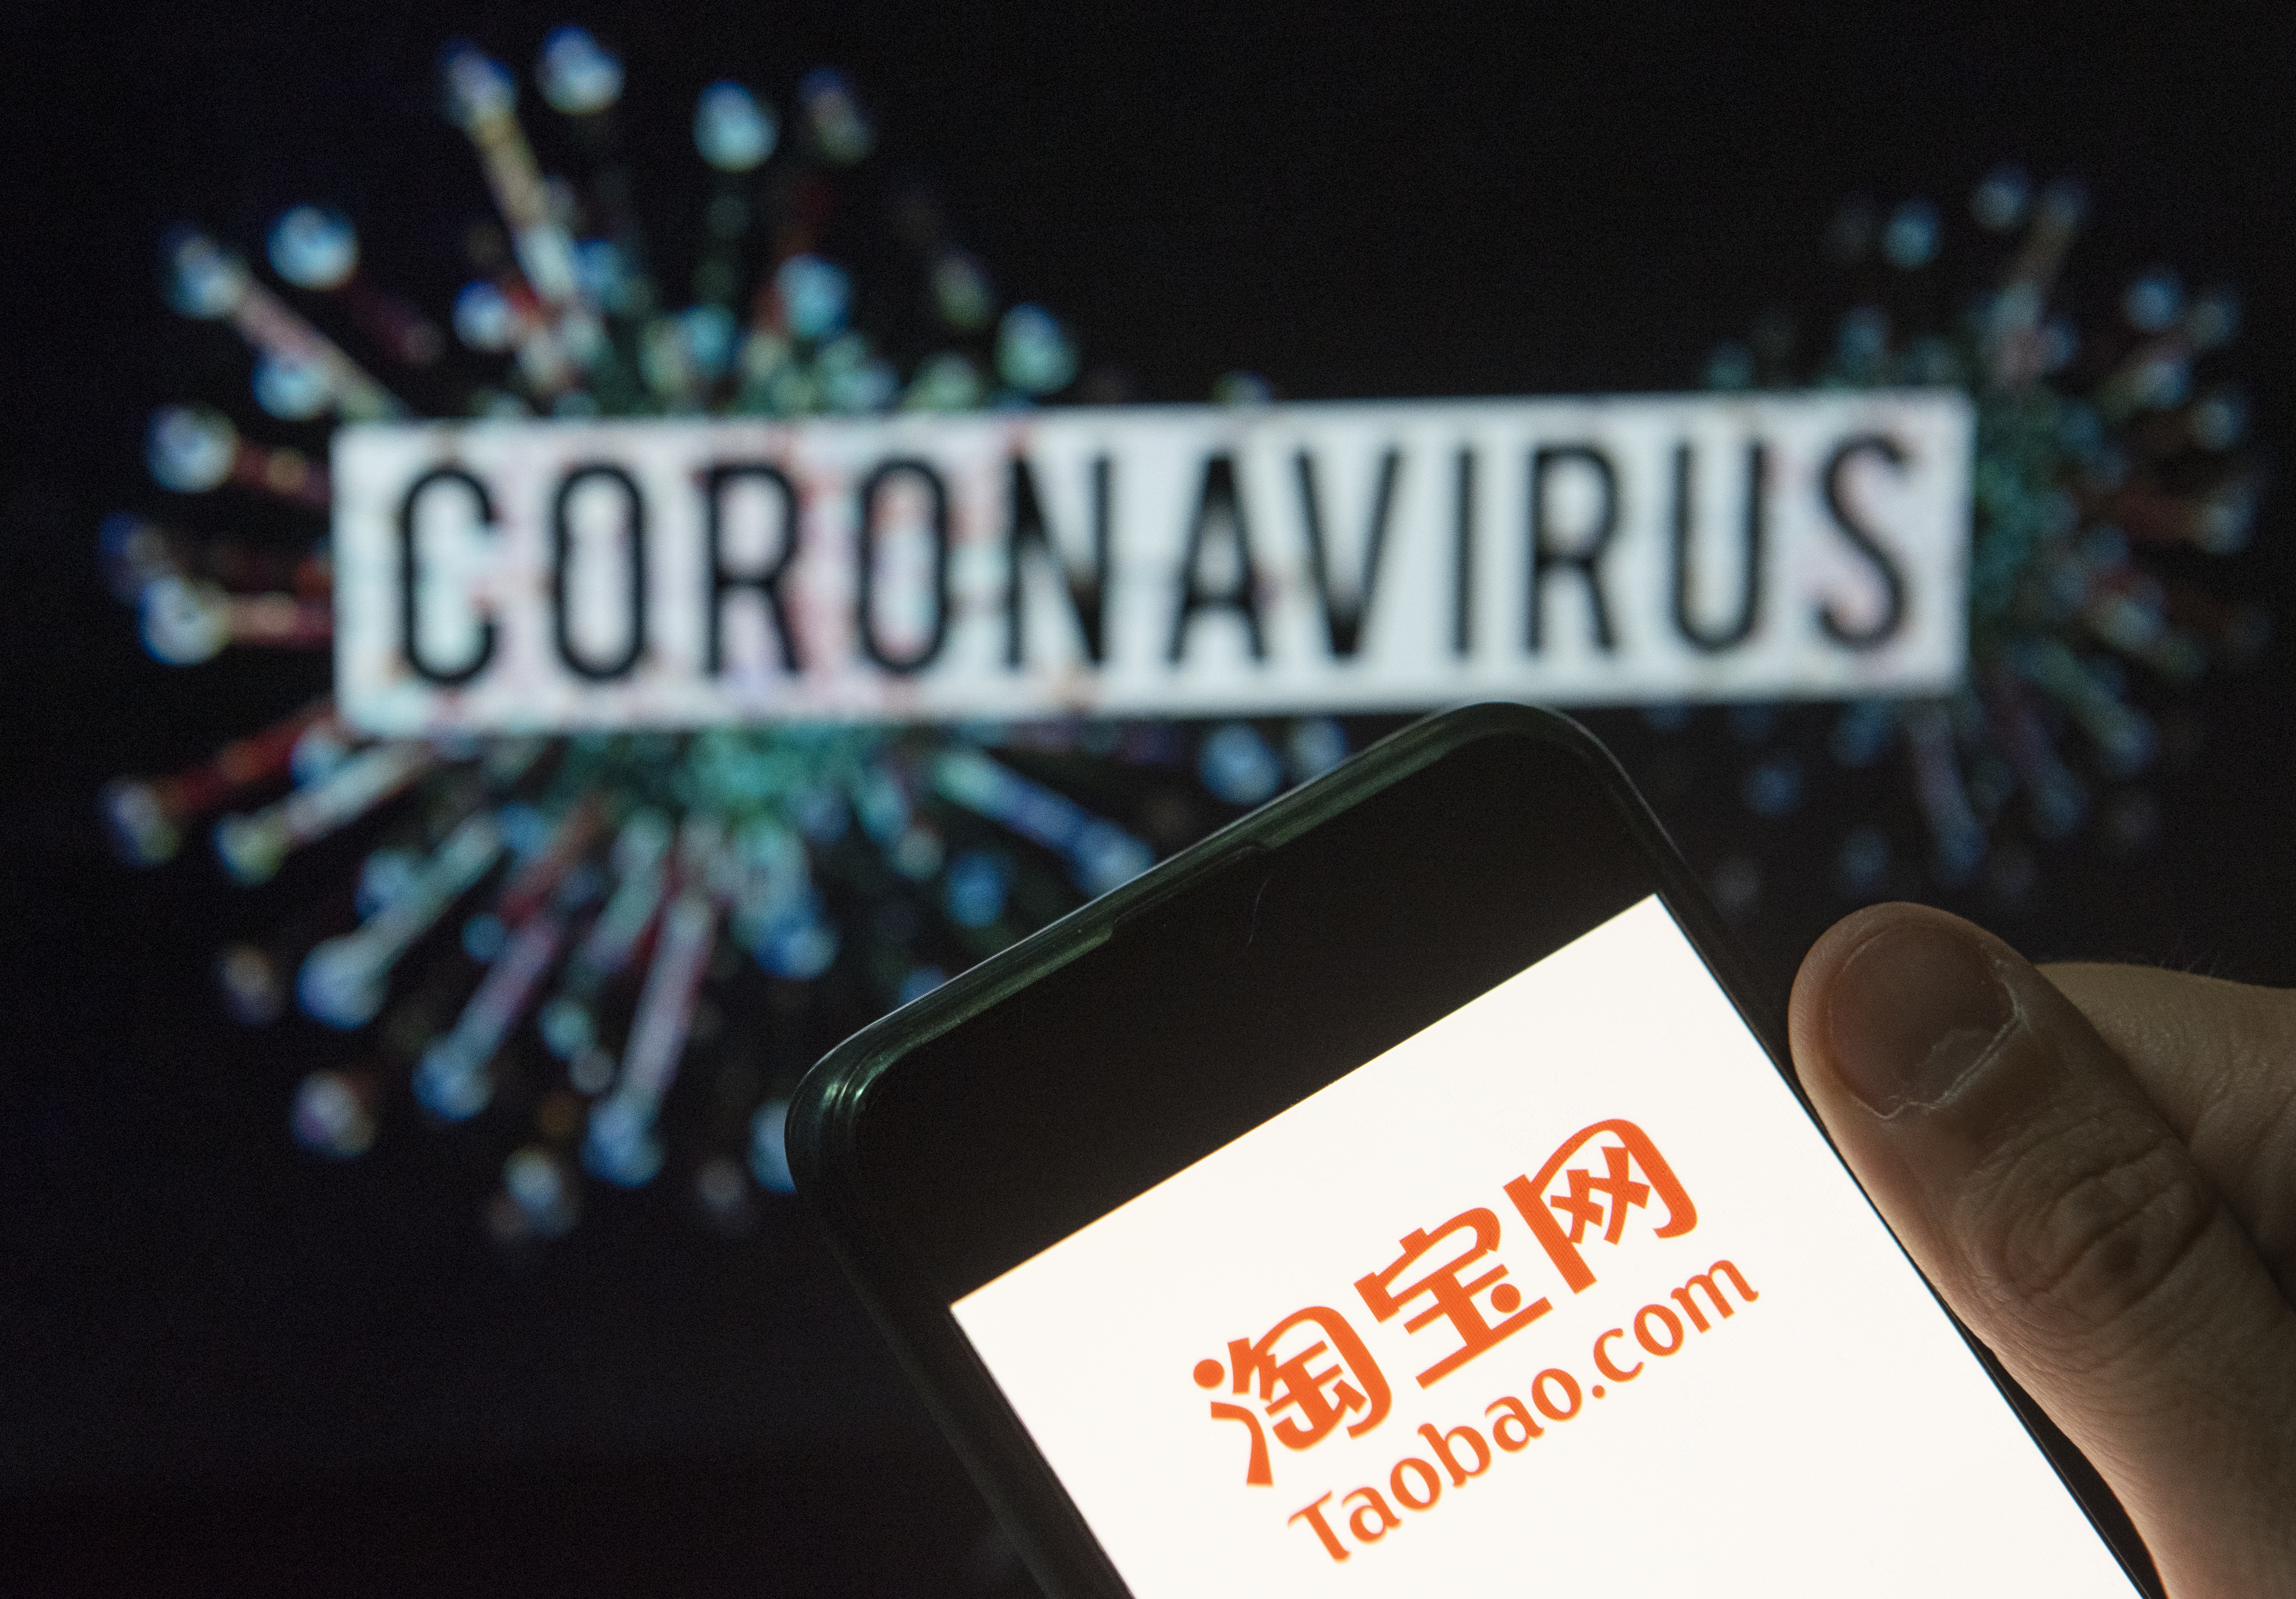 ATaobao logo displayed on a smartphone with a computer model of the COVID-19 coronavirus on the background.